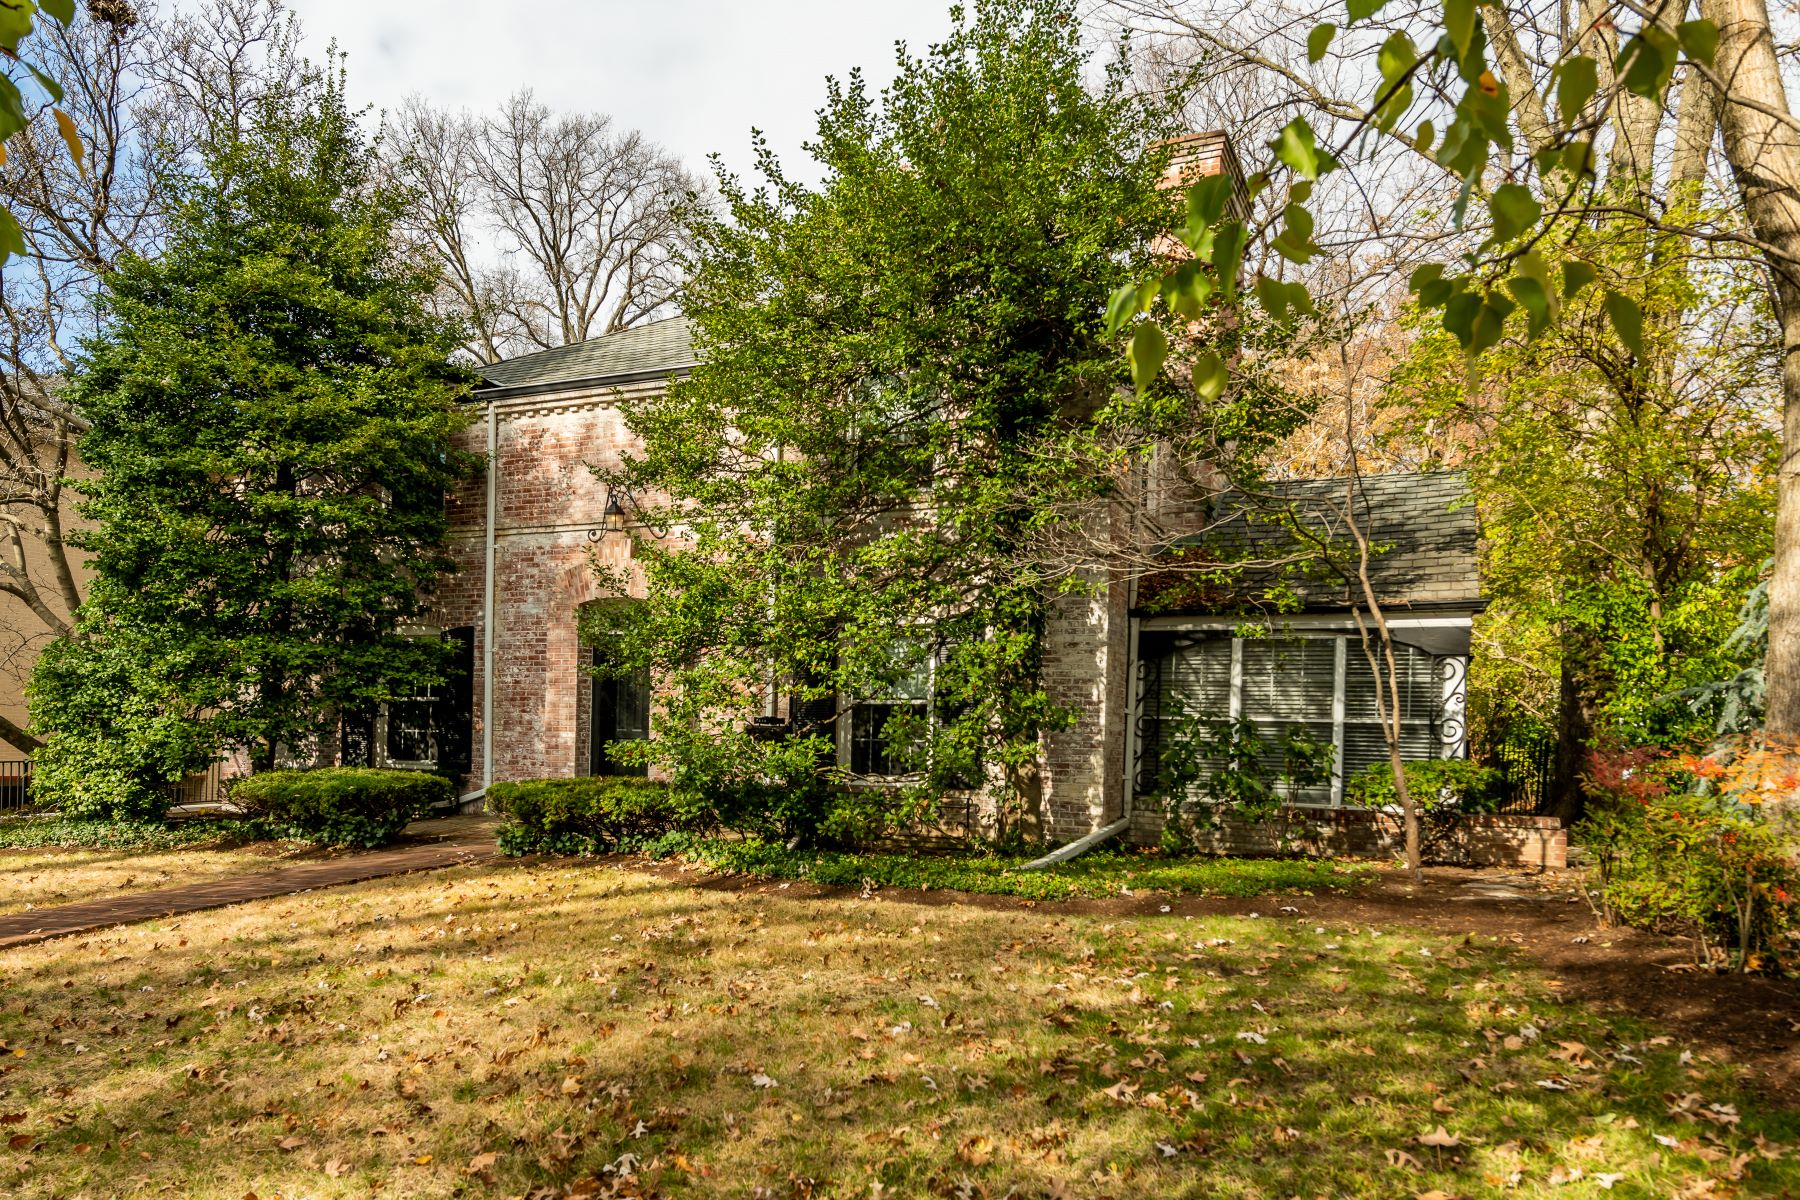 Additional photo for property listing at Quaint French Architectural Home in Clayton 7735 Davis Drive Clayton, Missouri 63105 United States